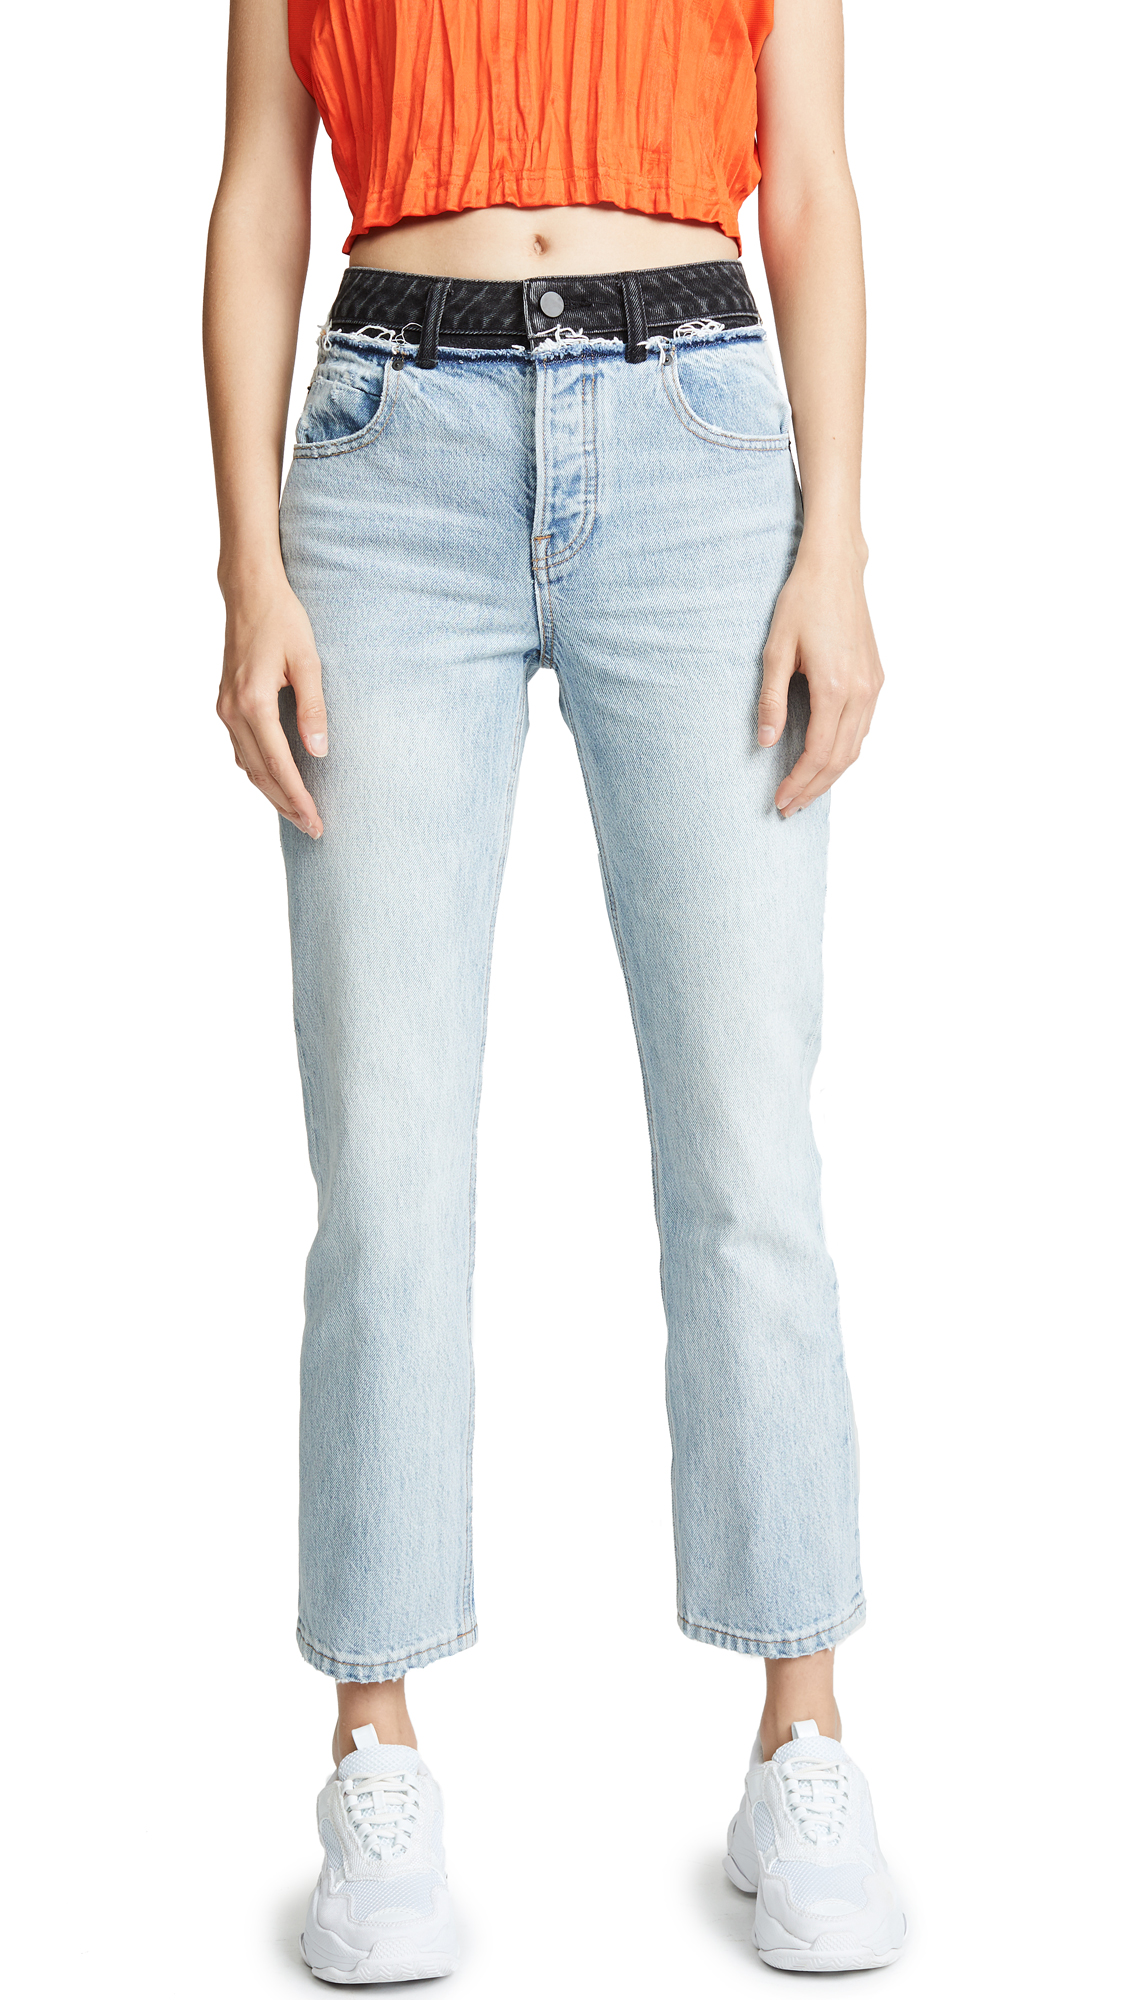 Denim x Alexander Wang Cult Jeans In Bleach/Grey Aged